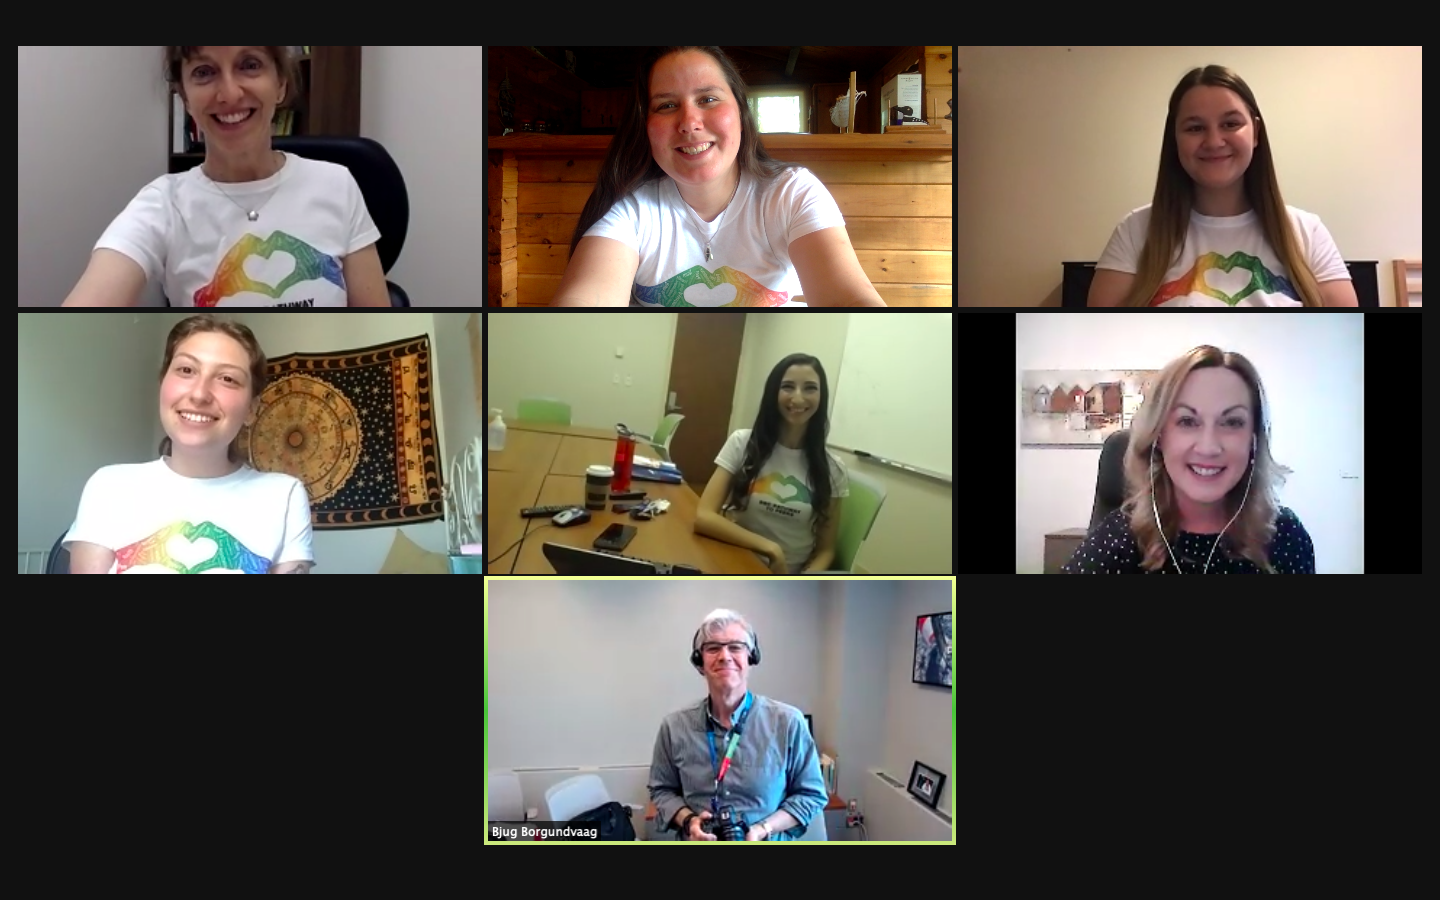 A screenshot of a zoom screen with 7 people celebrating the one year anniversary of the Pathway to Peers Program.